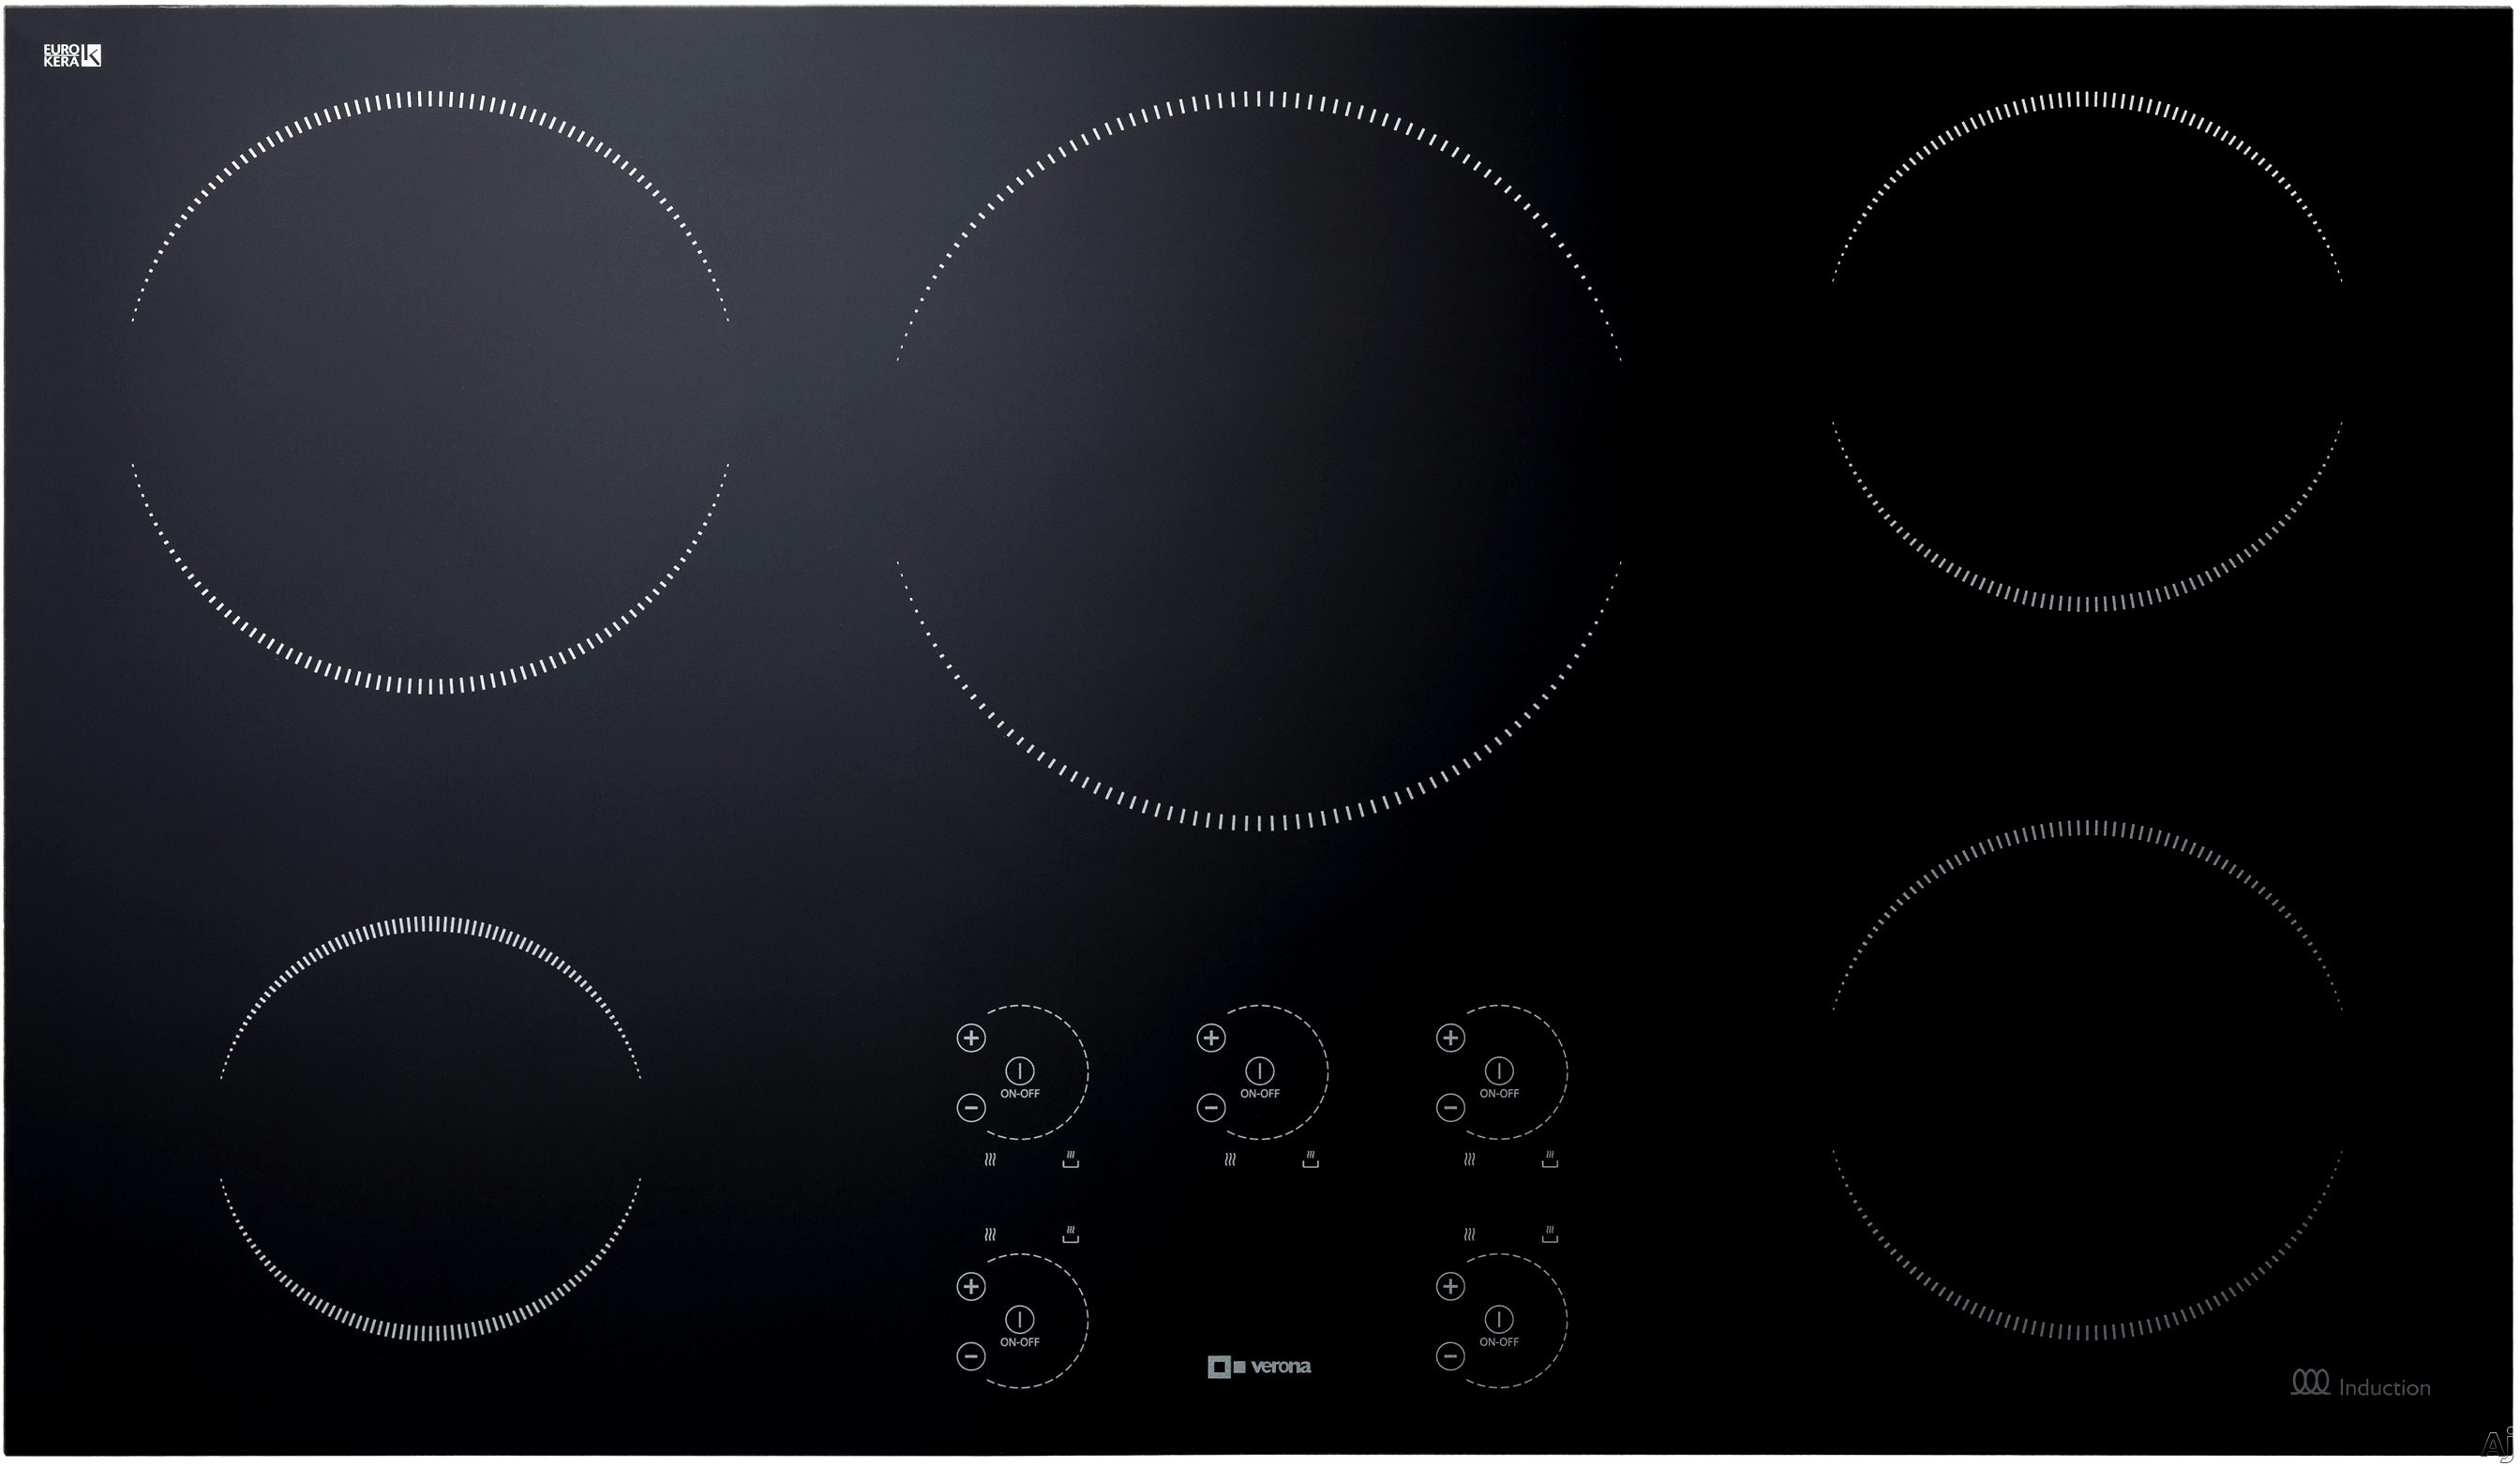 Verona VECTI365 36 Inch Induction Cooktop with 5 Heating Elements, Black Ceramic Glass, Booster and Fast Boil Function, Crescent Touch Controls, Hot Surface and Residual Heat Indicator, Audible Alarm,